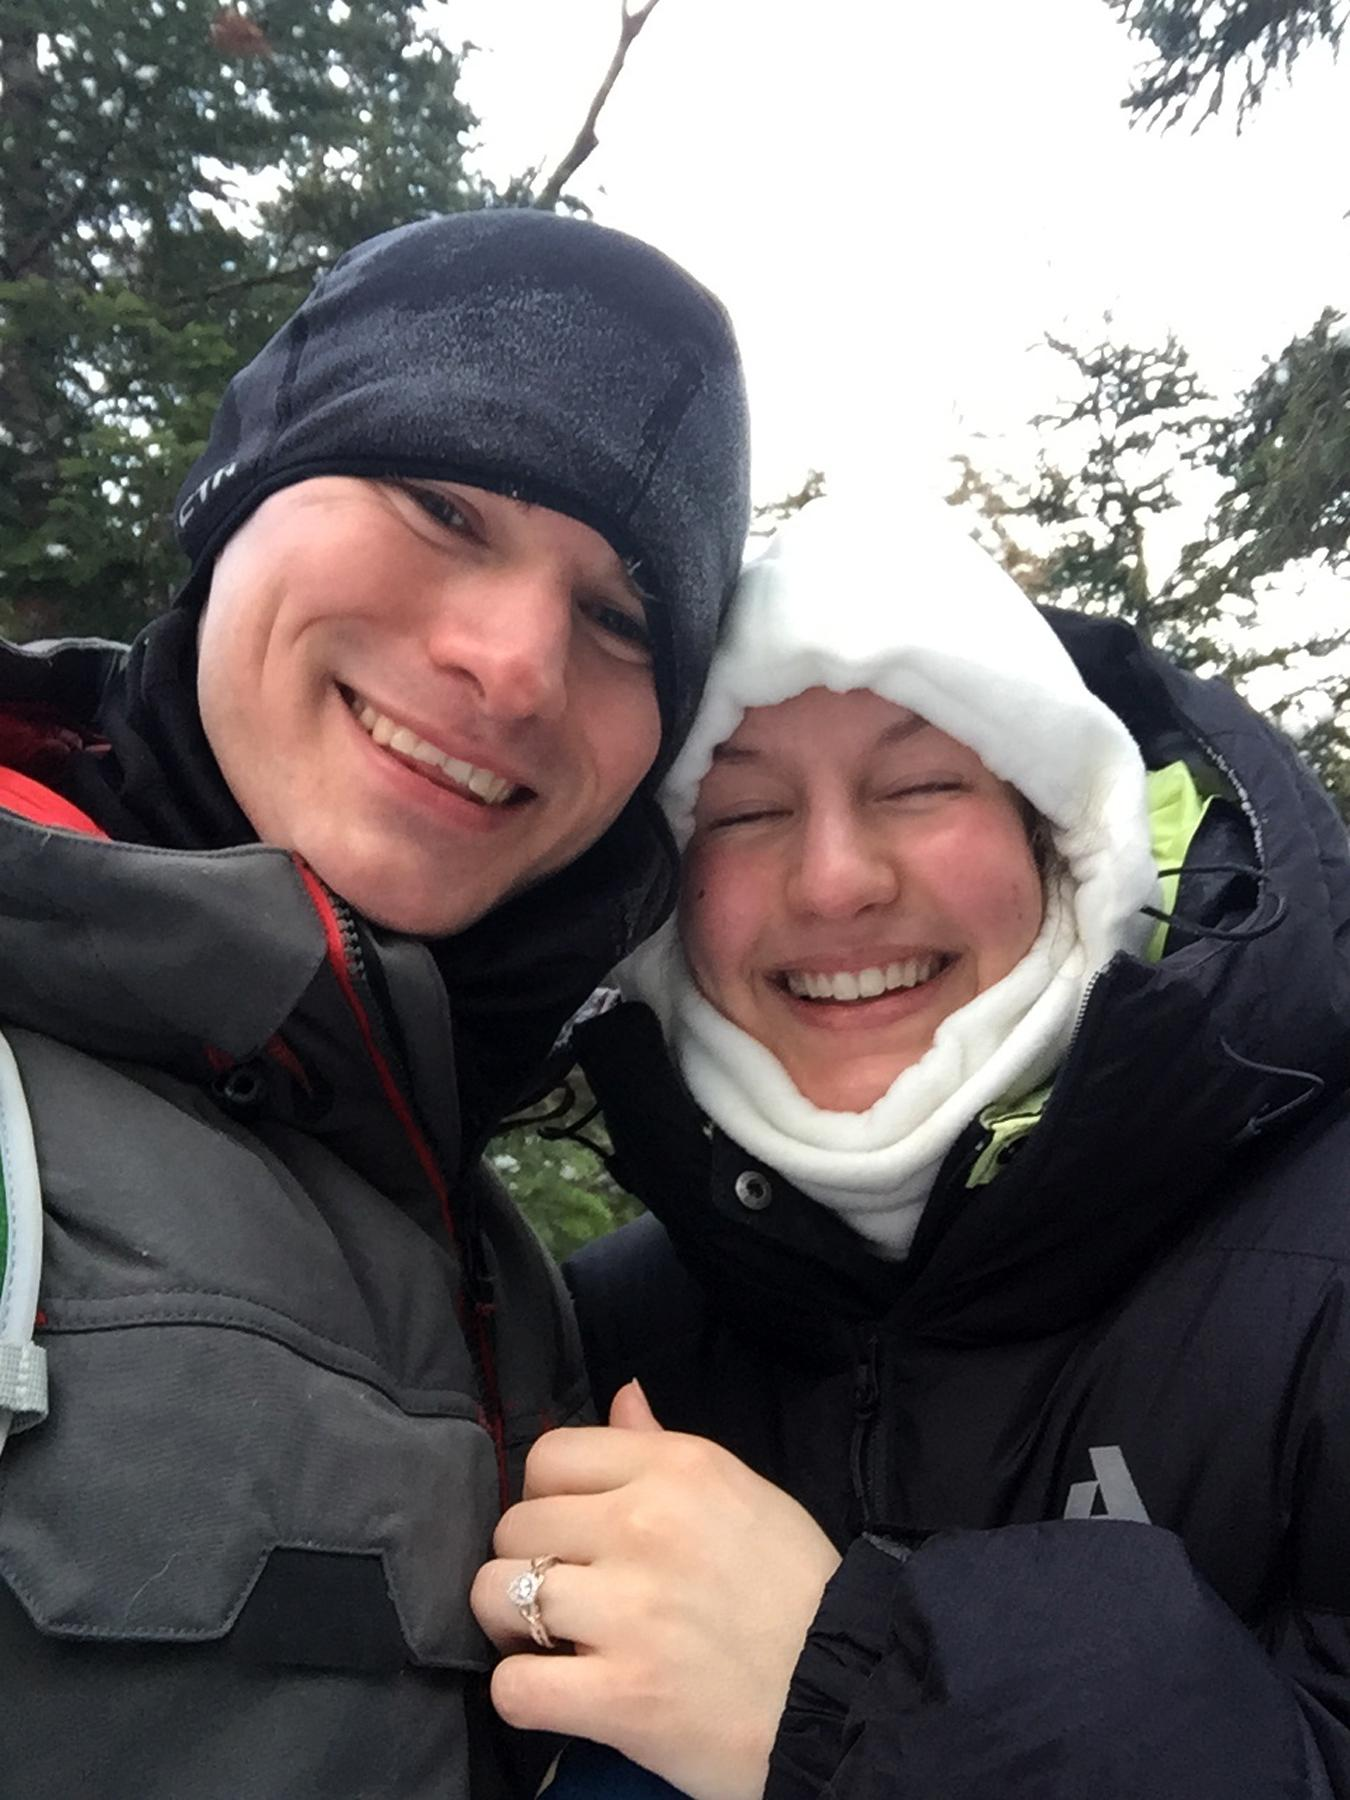 Josh Darnell, of Londonderry, New Hampshire, proposed to Rachel Raske, of Lowell, Massachusetts, on Thursday, Dec. 28, 2017, in Tuckerman's Ravine, New Hampshire, on the same day the temperature dropped to minus-34 (-37 Celsius) on nearby Mount Washington. Raske, of Lowell, Massachusetts, said yes.  (AP Photo/Doug Darnell)